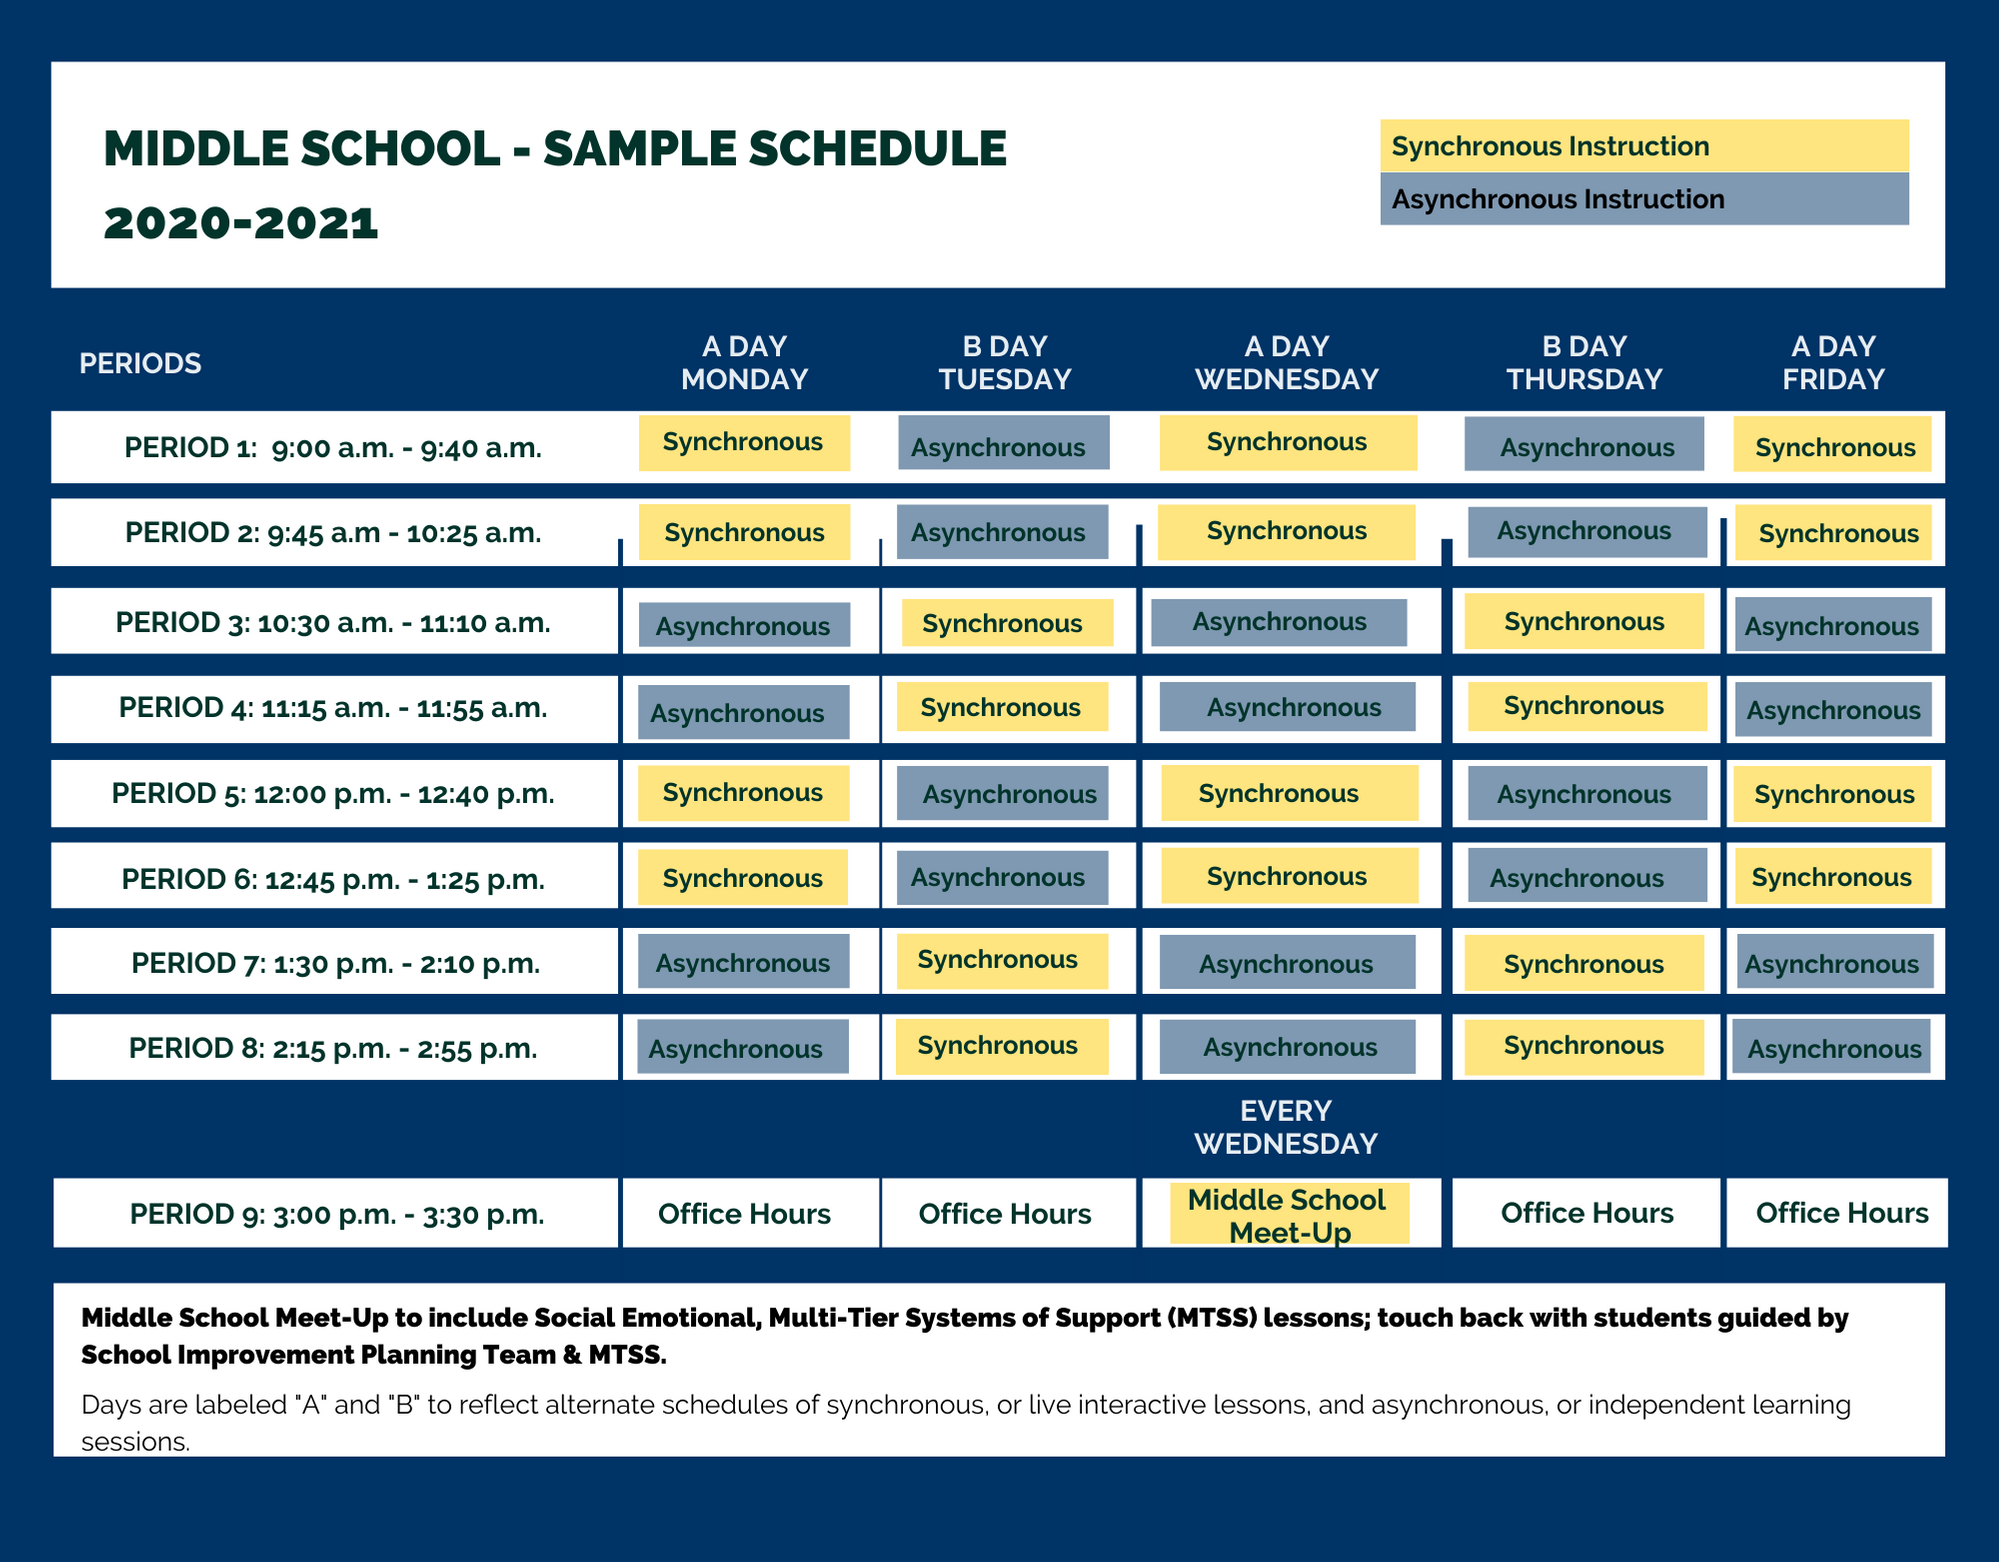 Middle School Sample Schedule